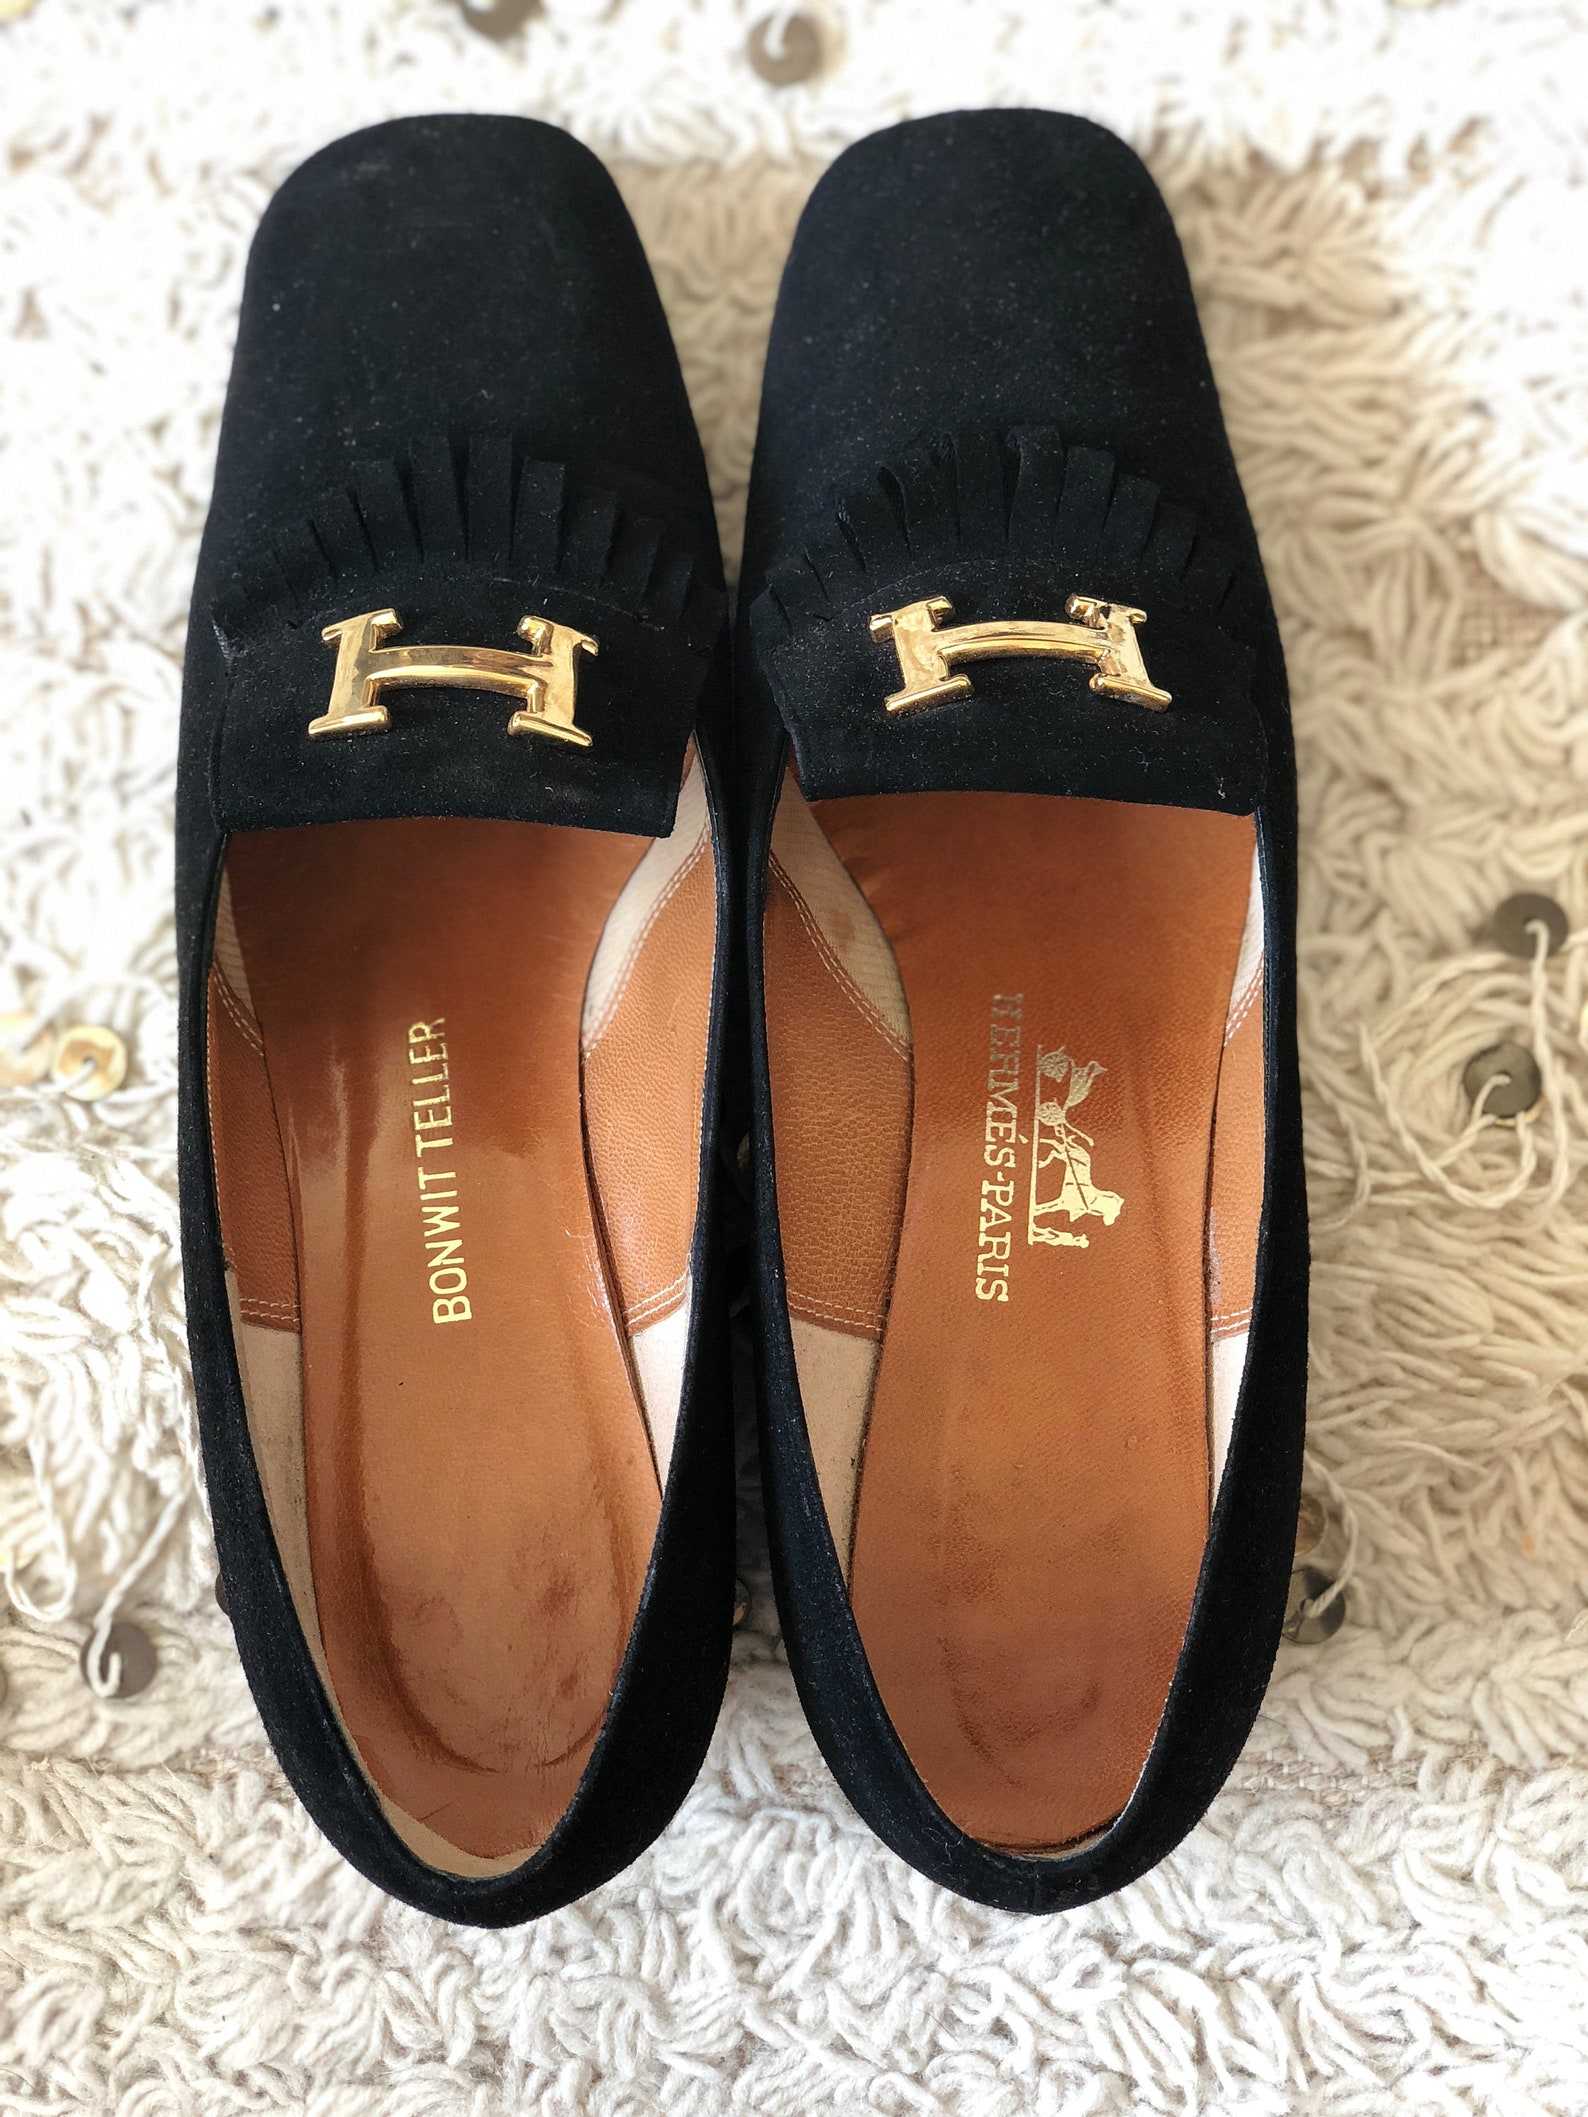 vintage hermes h gold logo black suede leather loafers heels driving shoes smoking slippers ballet flats eu 38 us 8